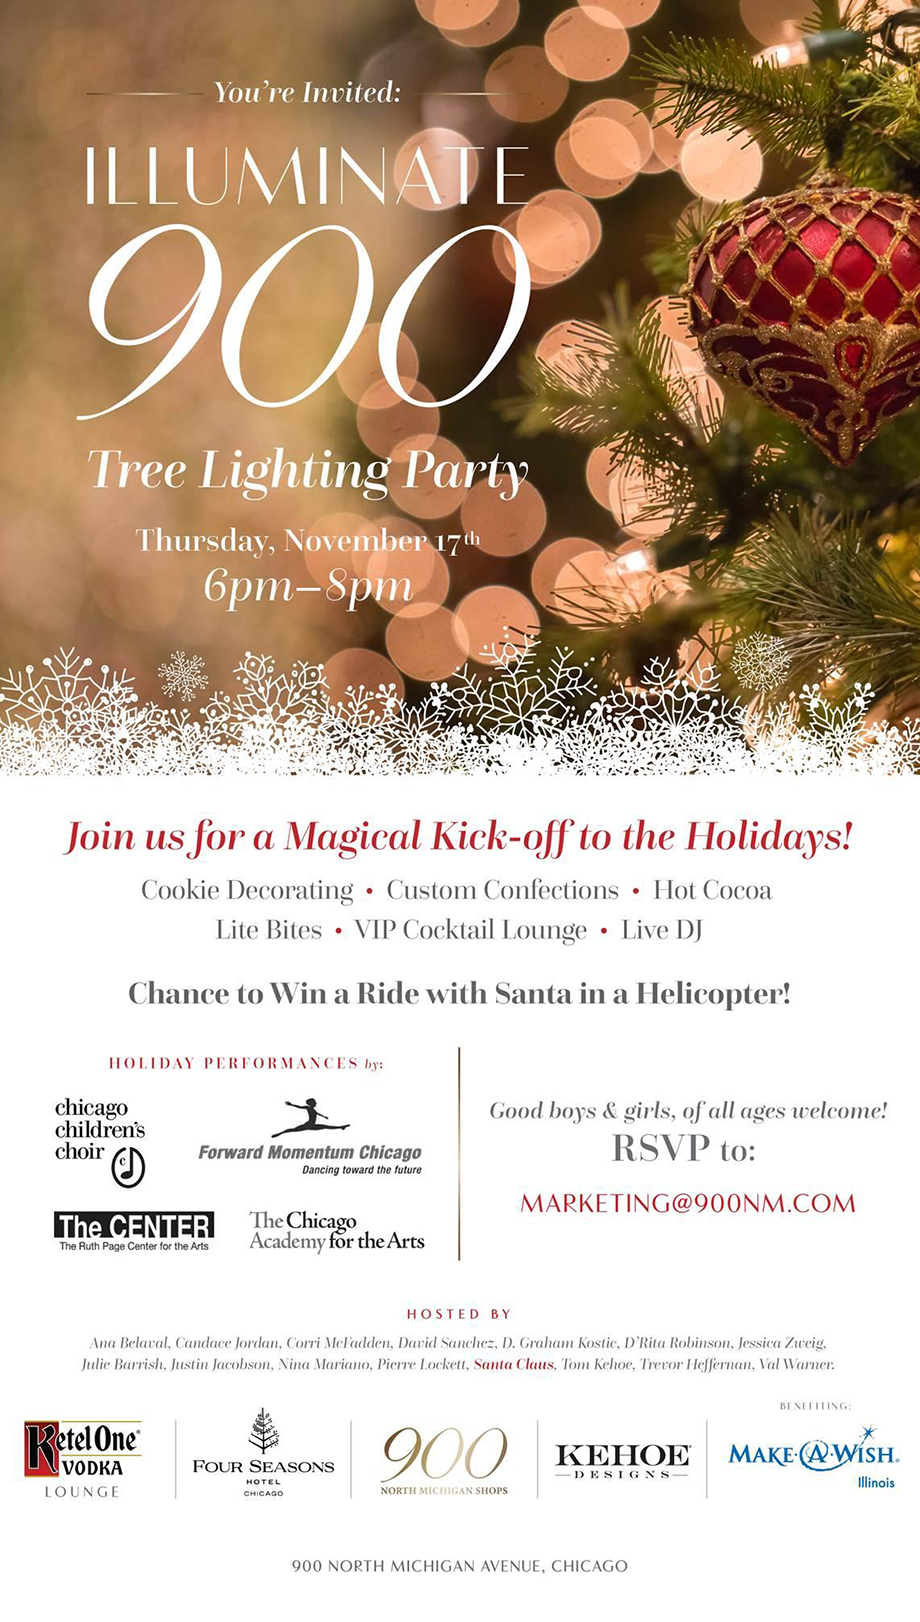 An invitation to Illuminate 900, the 900 shops first tree lighting party.